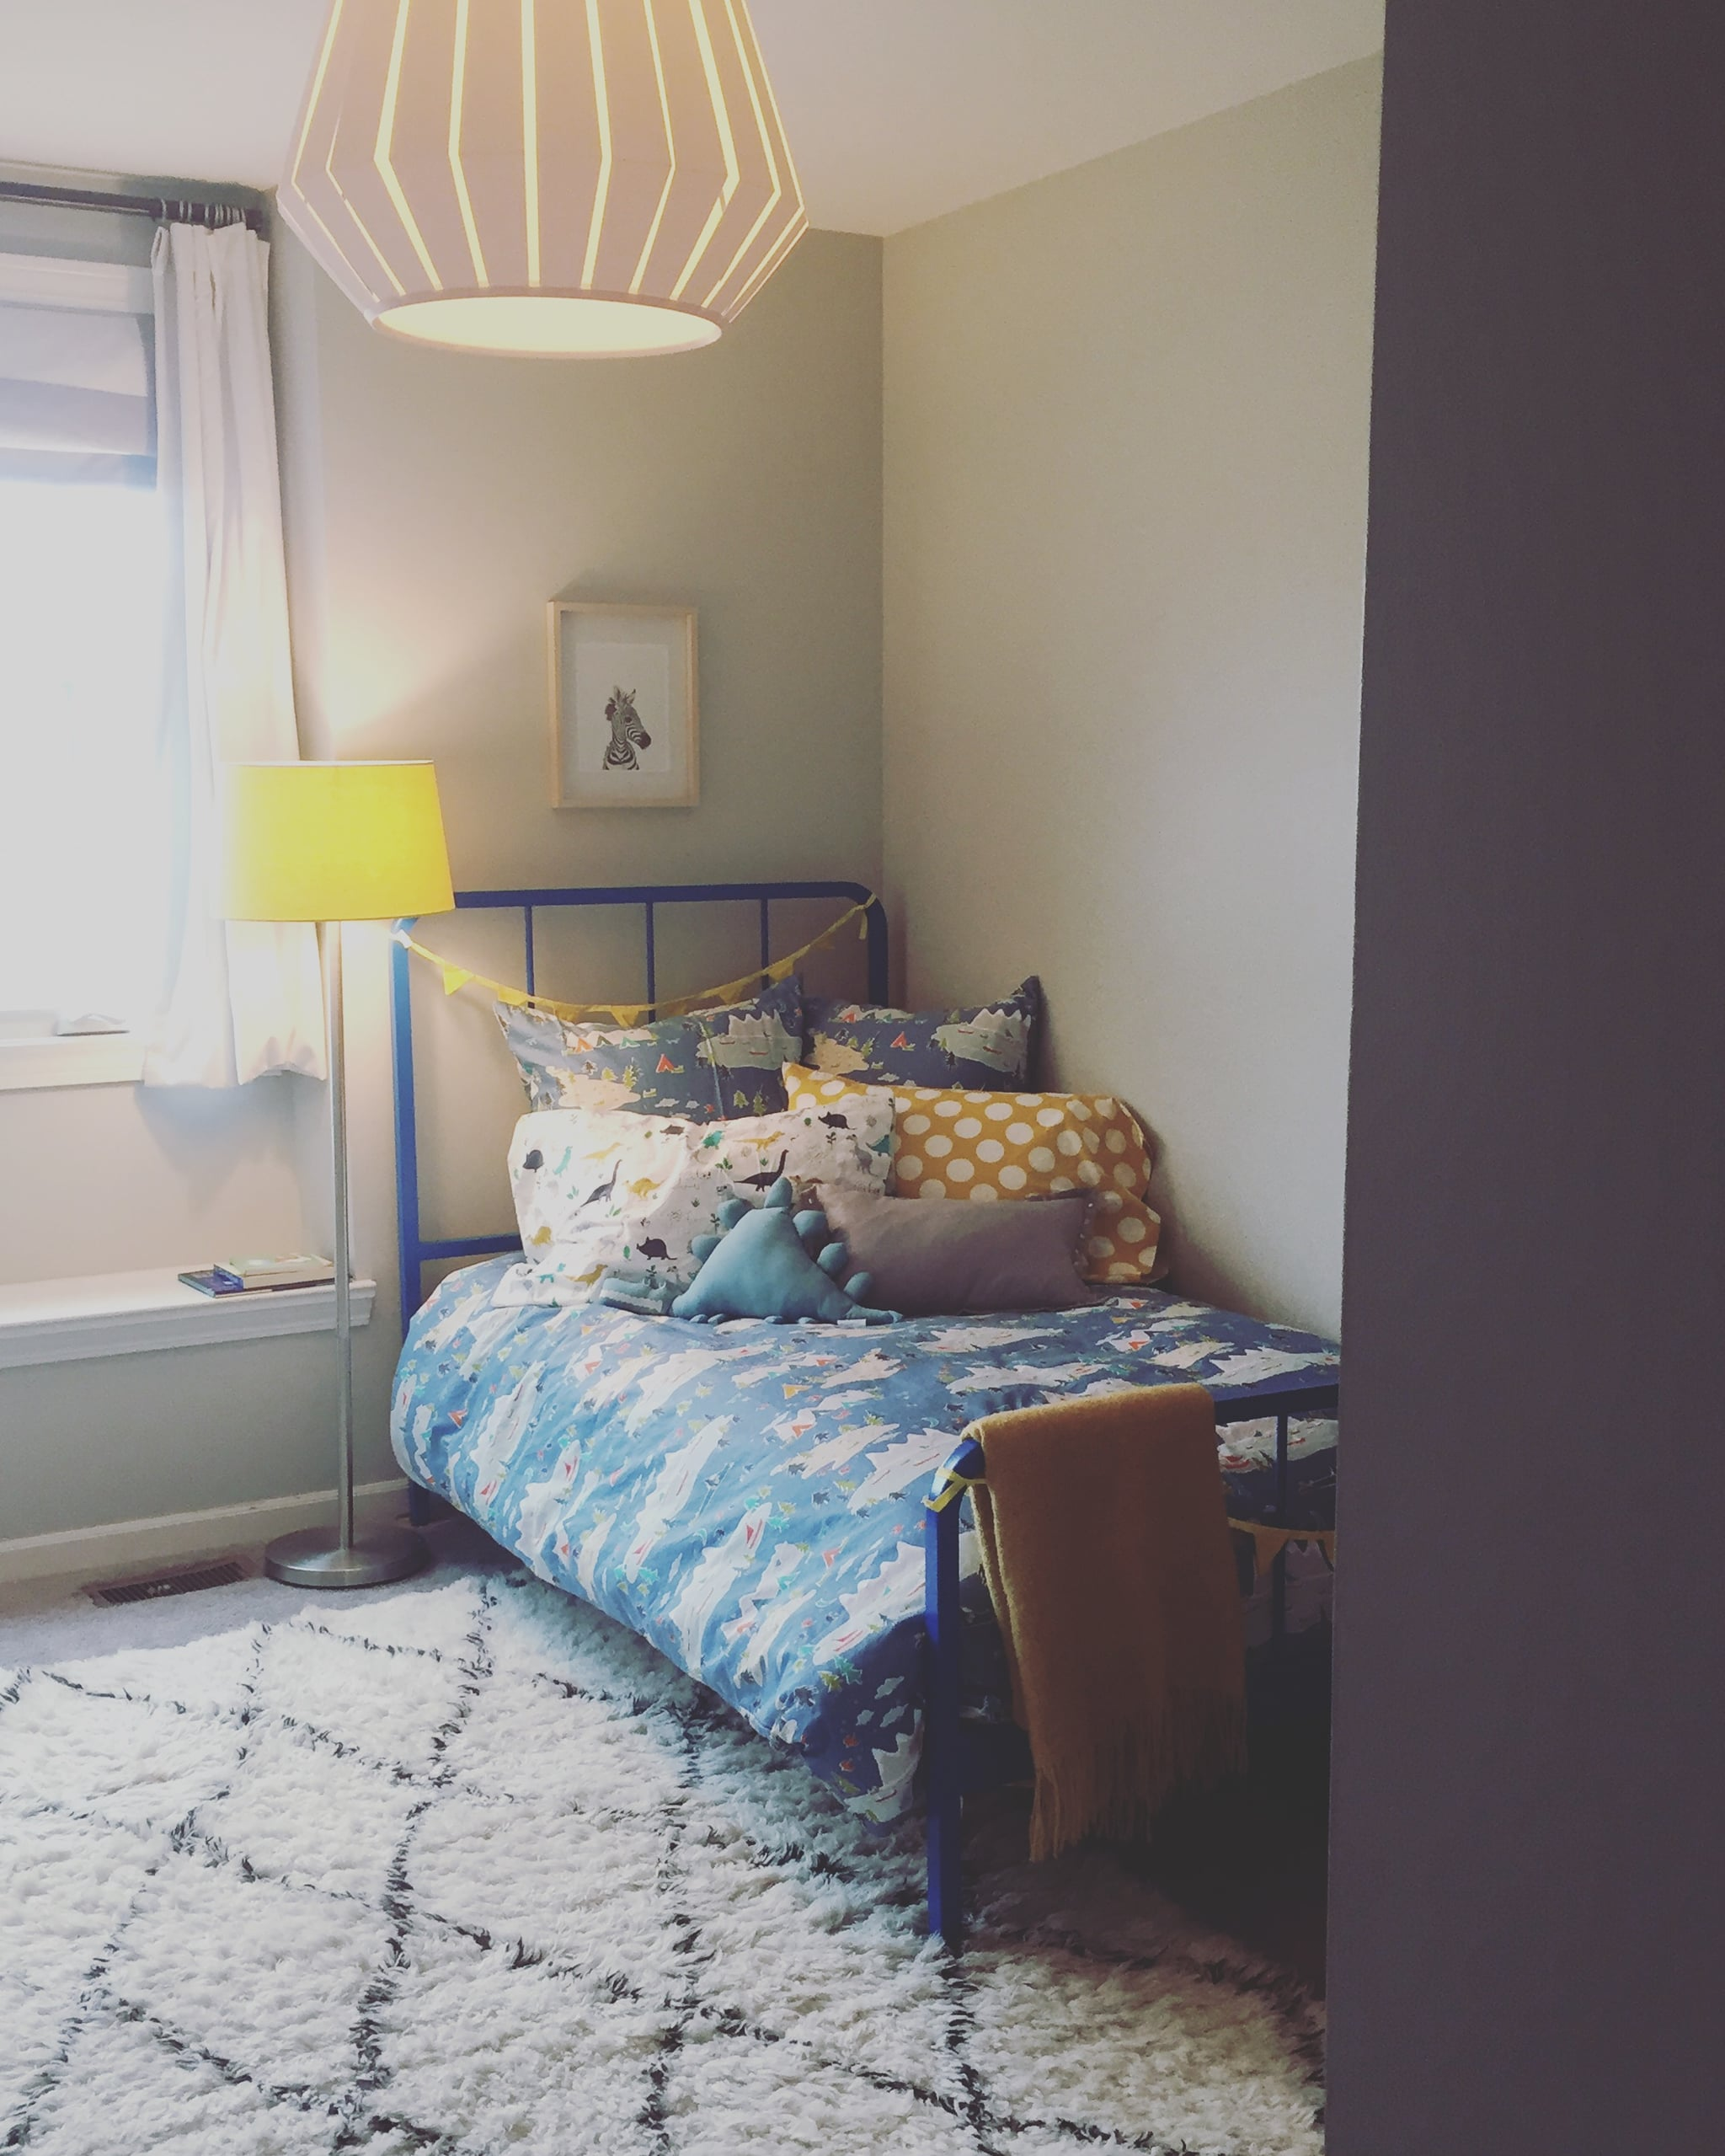 15 Year Old Boy Bedroom: Little Kid Room From Nursery Transition Tips